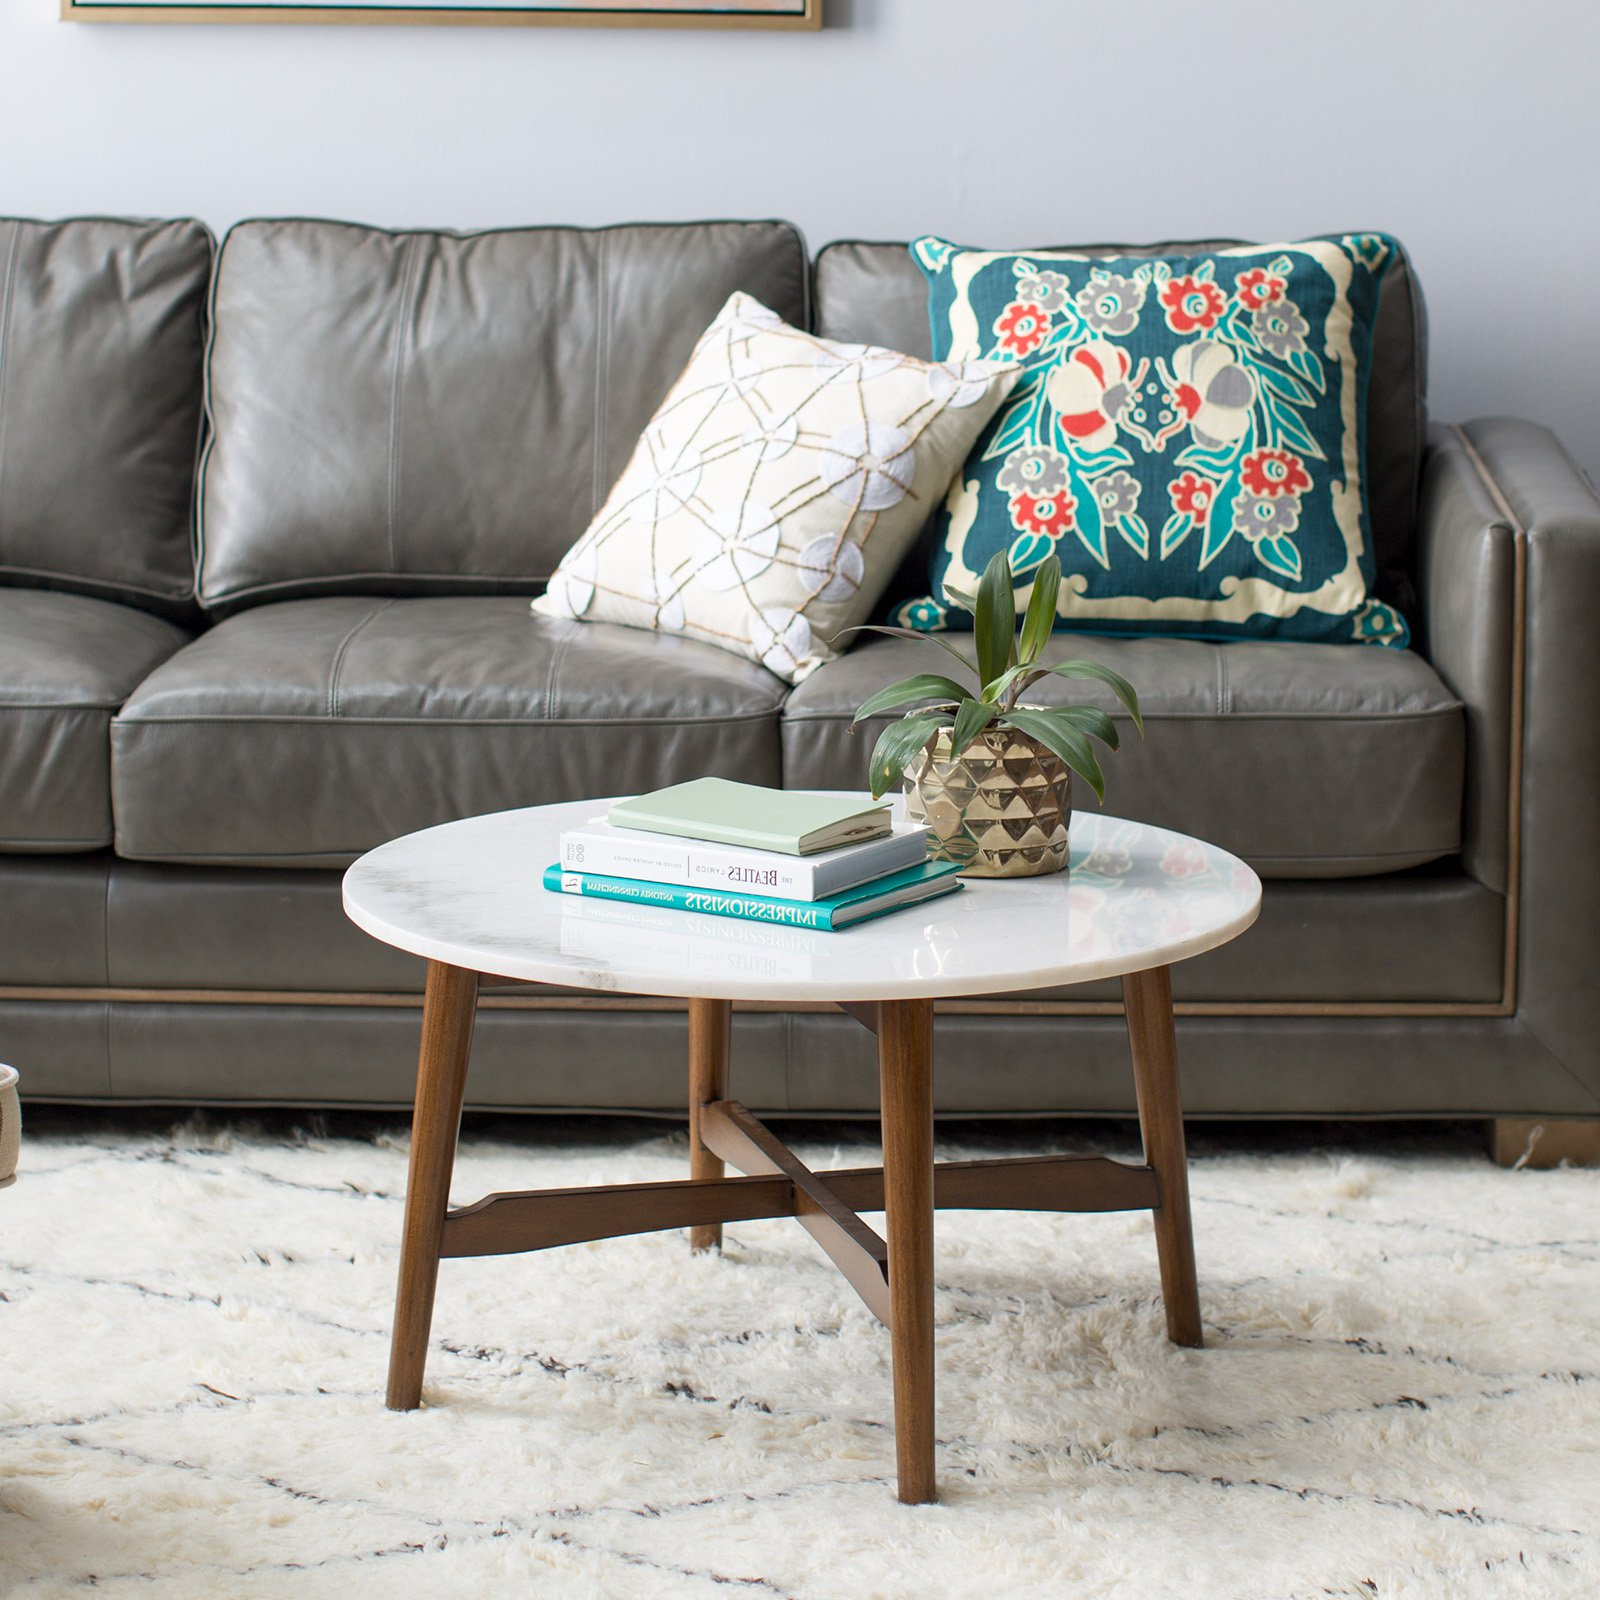 Most Recently Released Belham Living James Round Mid Century Modern Marble Coffee Table Intended For Mid Century Modern Marble Coffee Tables (View 18 of 20)